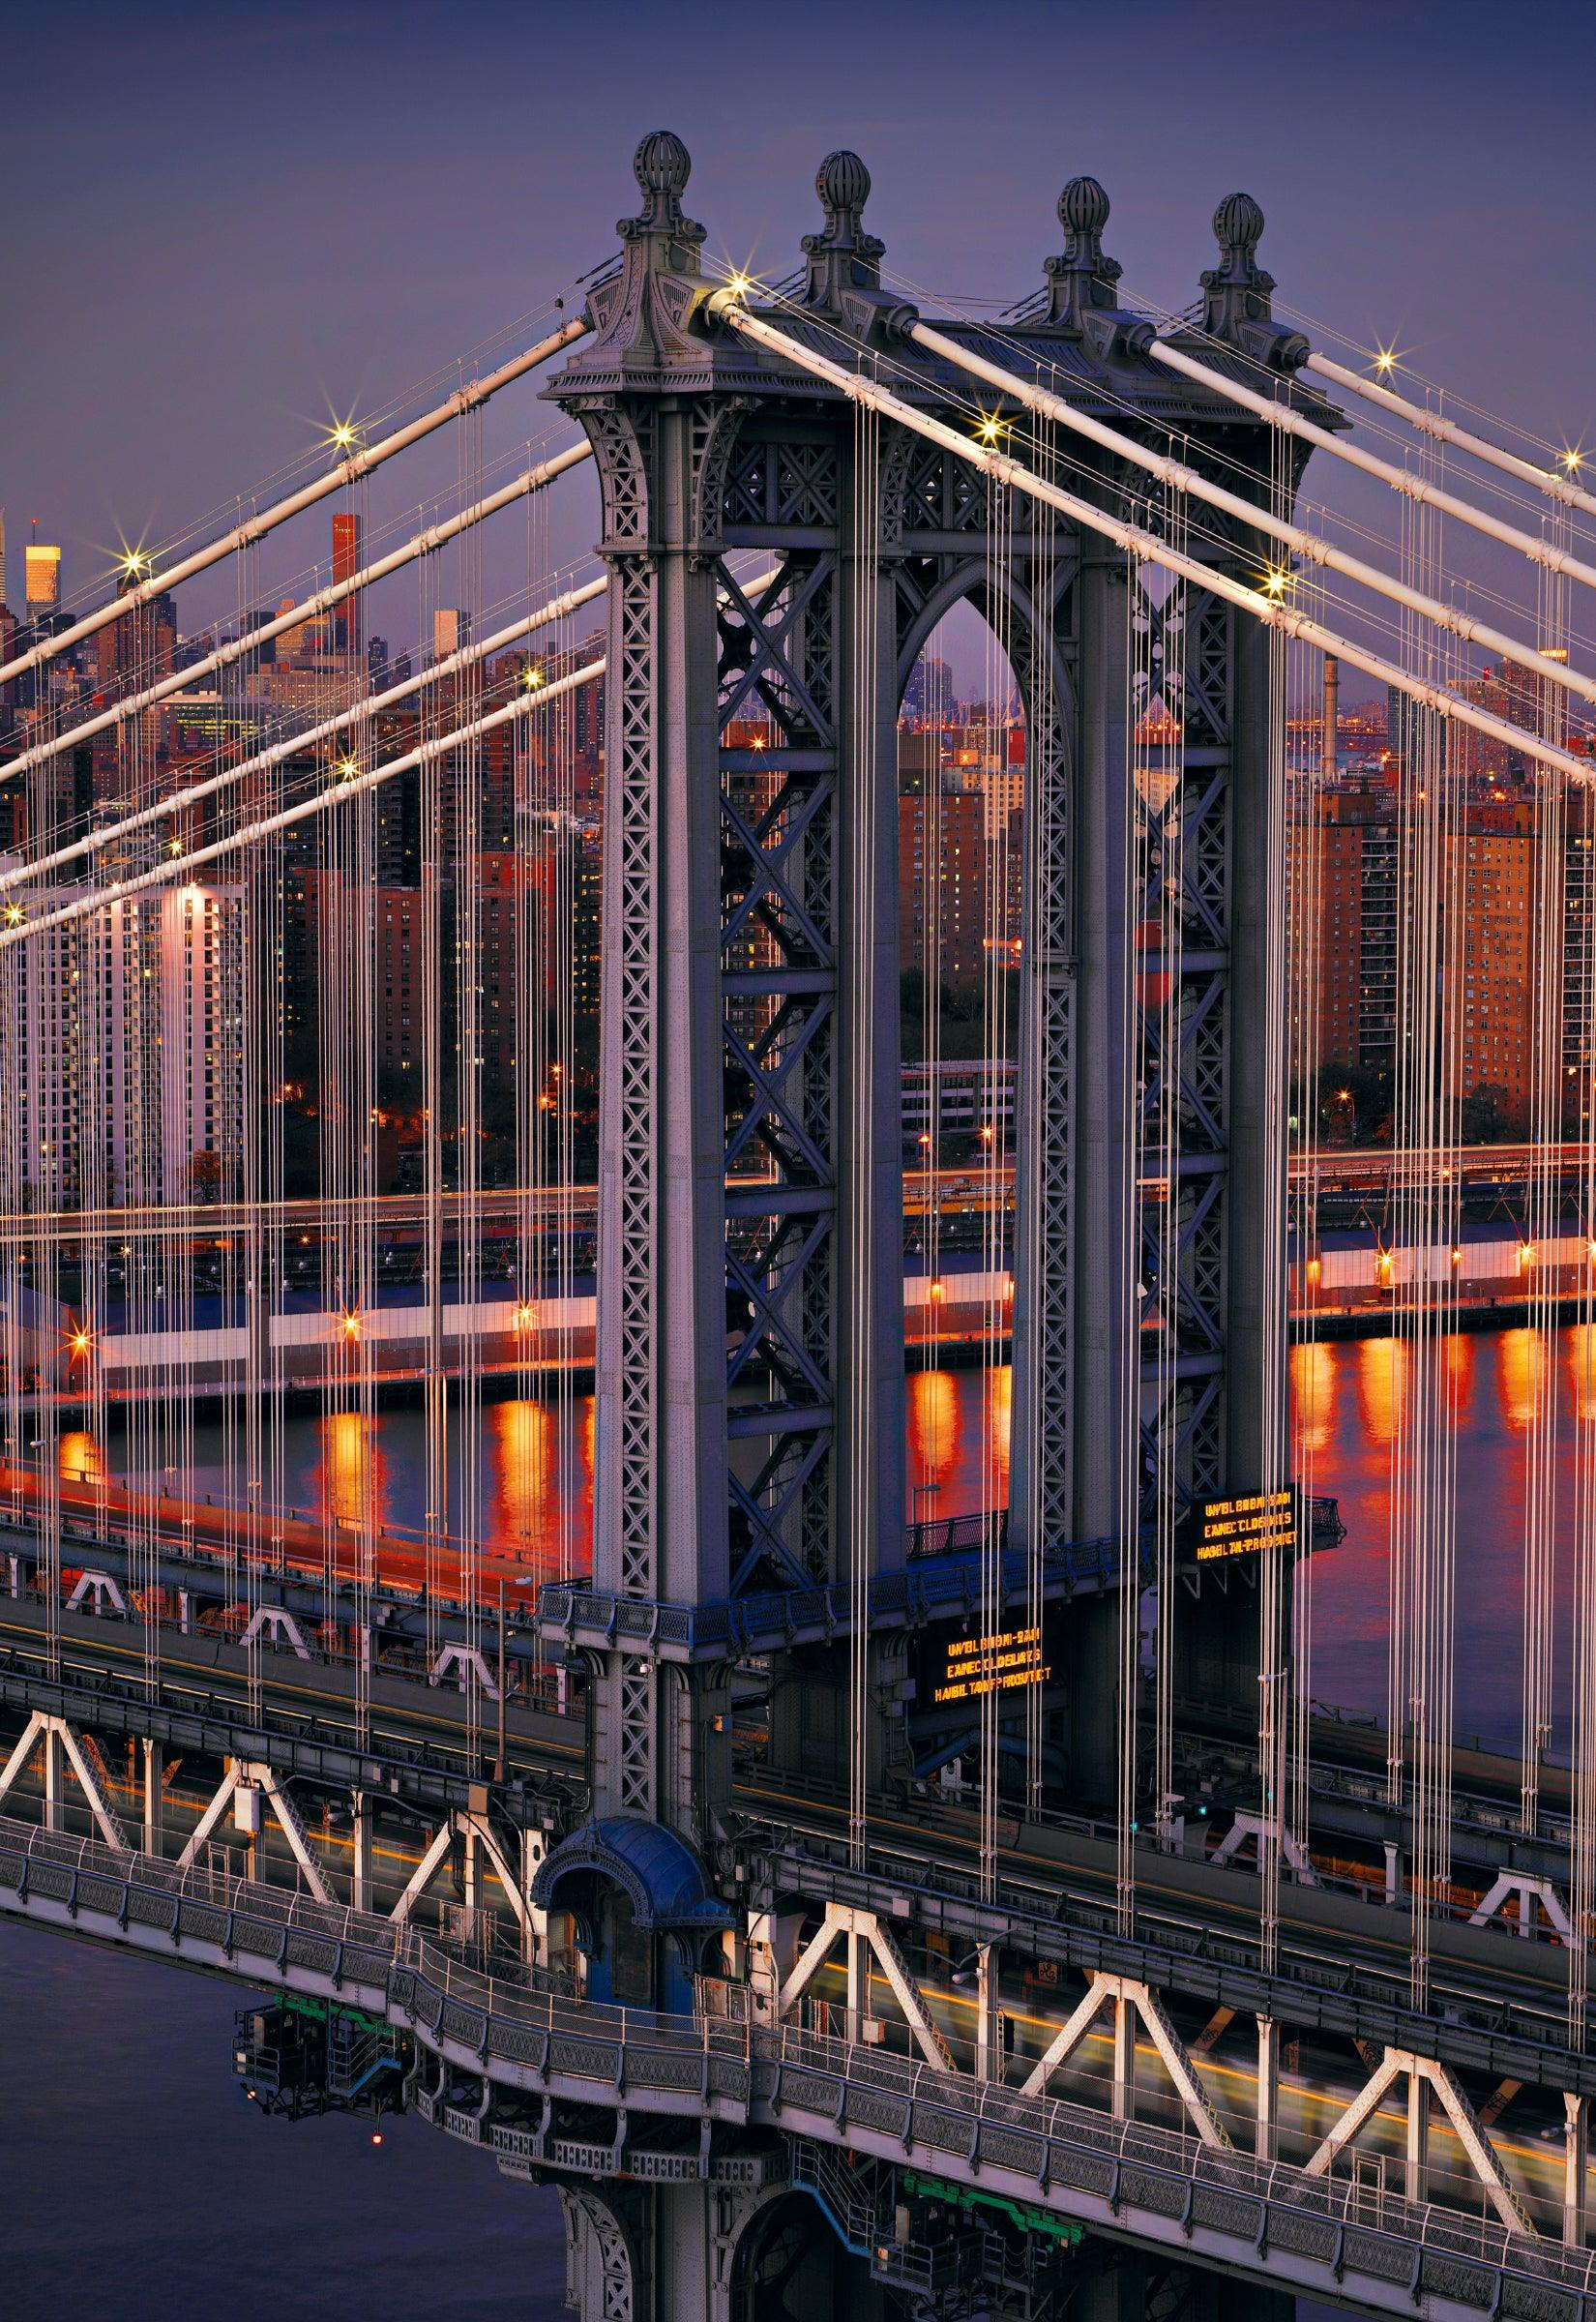 Section of the Manhattan Bridge lit up at night overlooking the glow of New York City in the distance